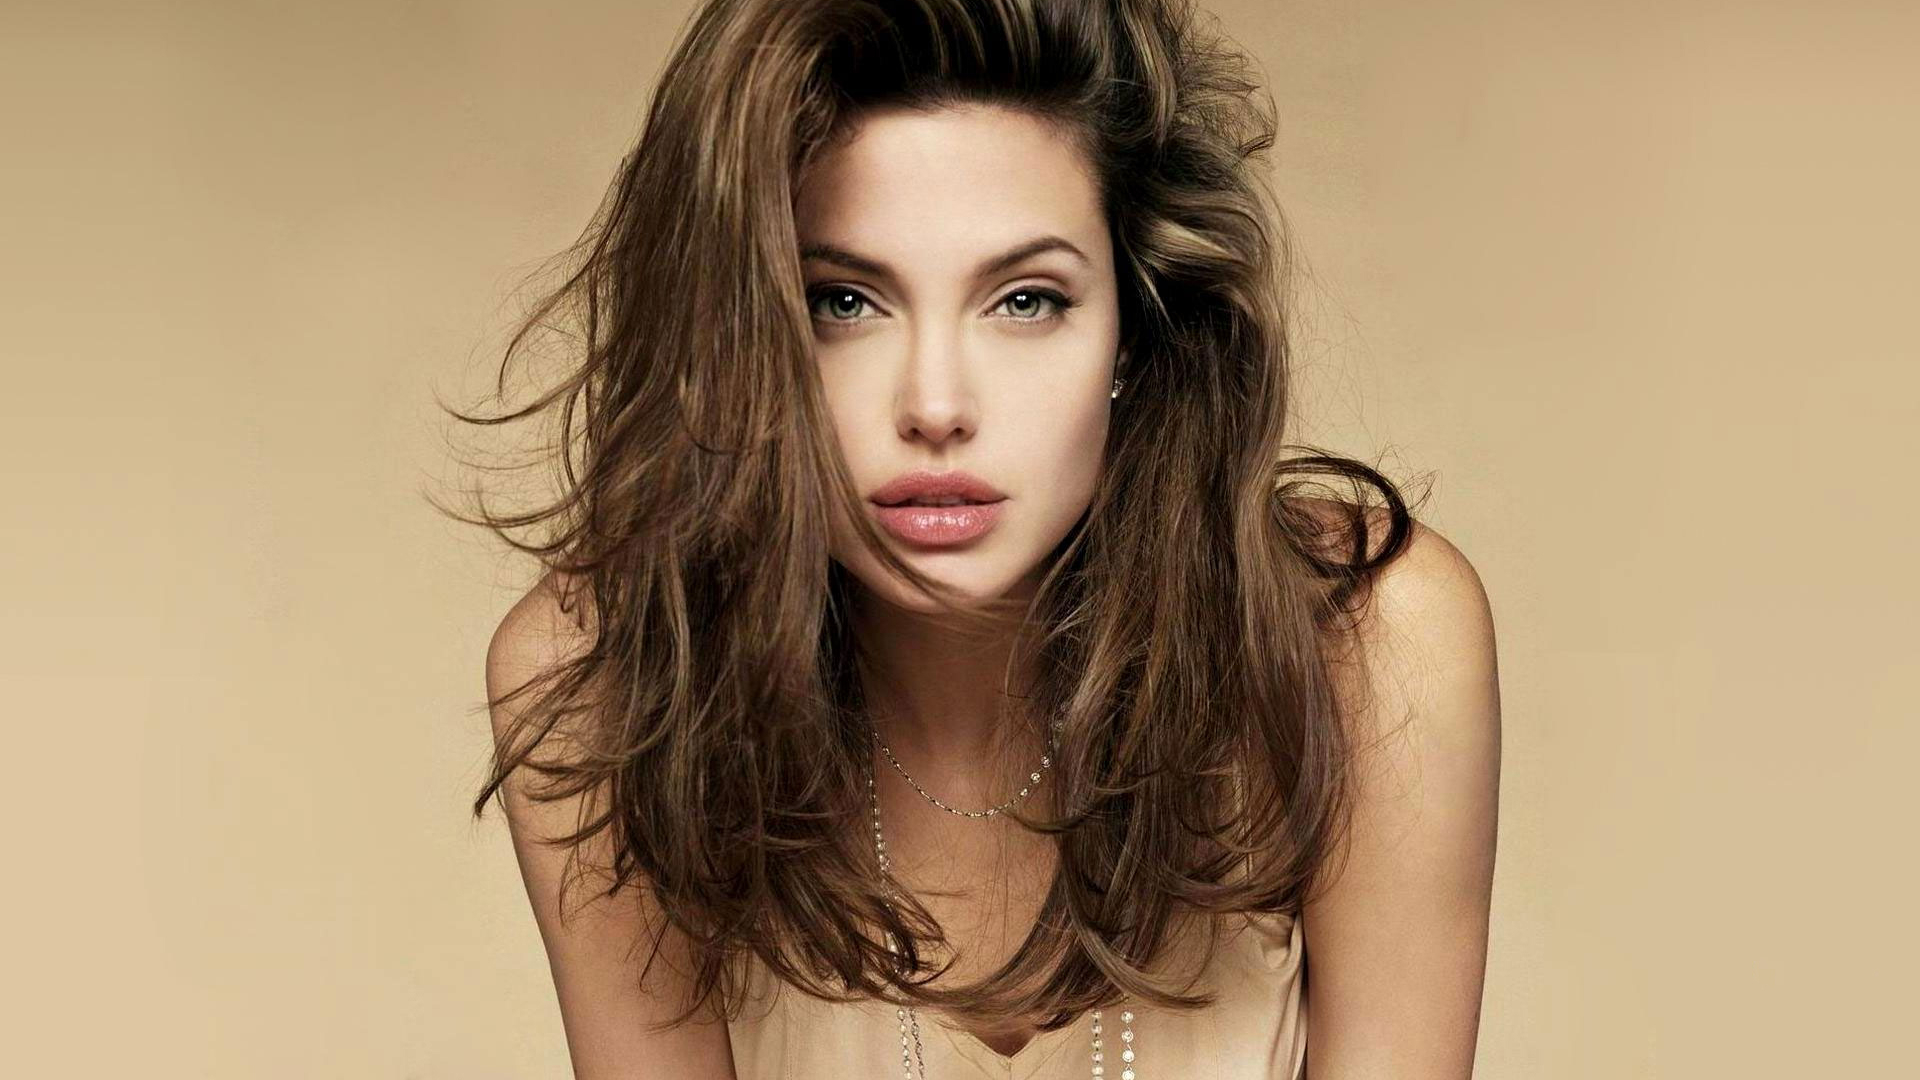 Image result for angelina jolie iphone wallpaper